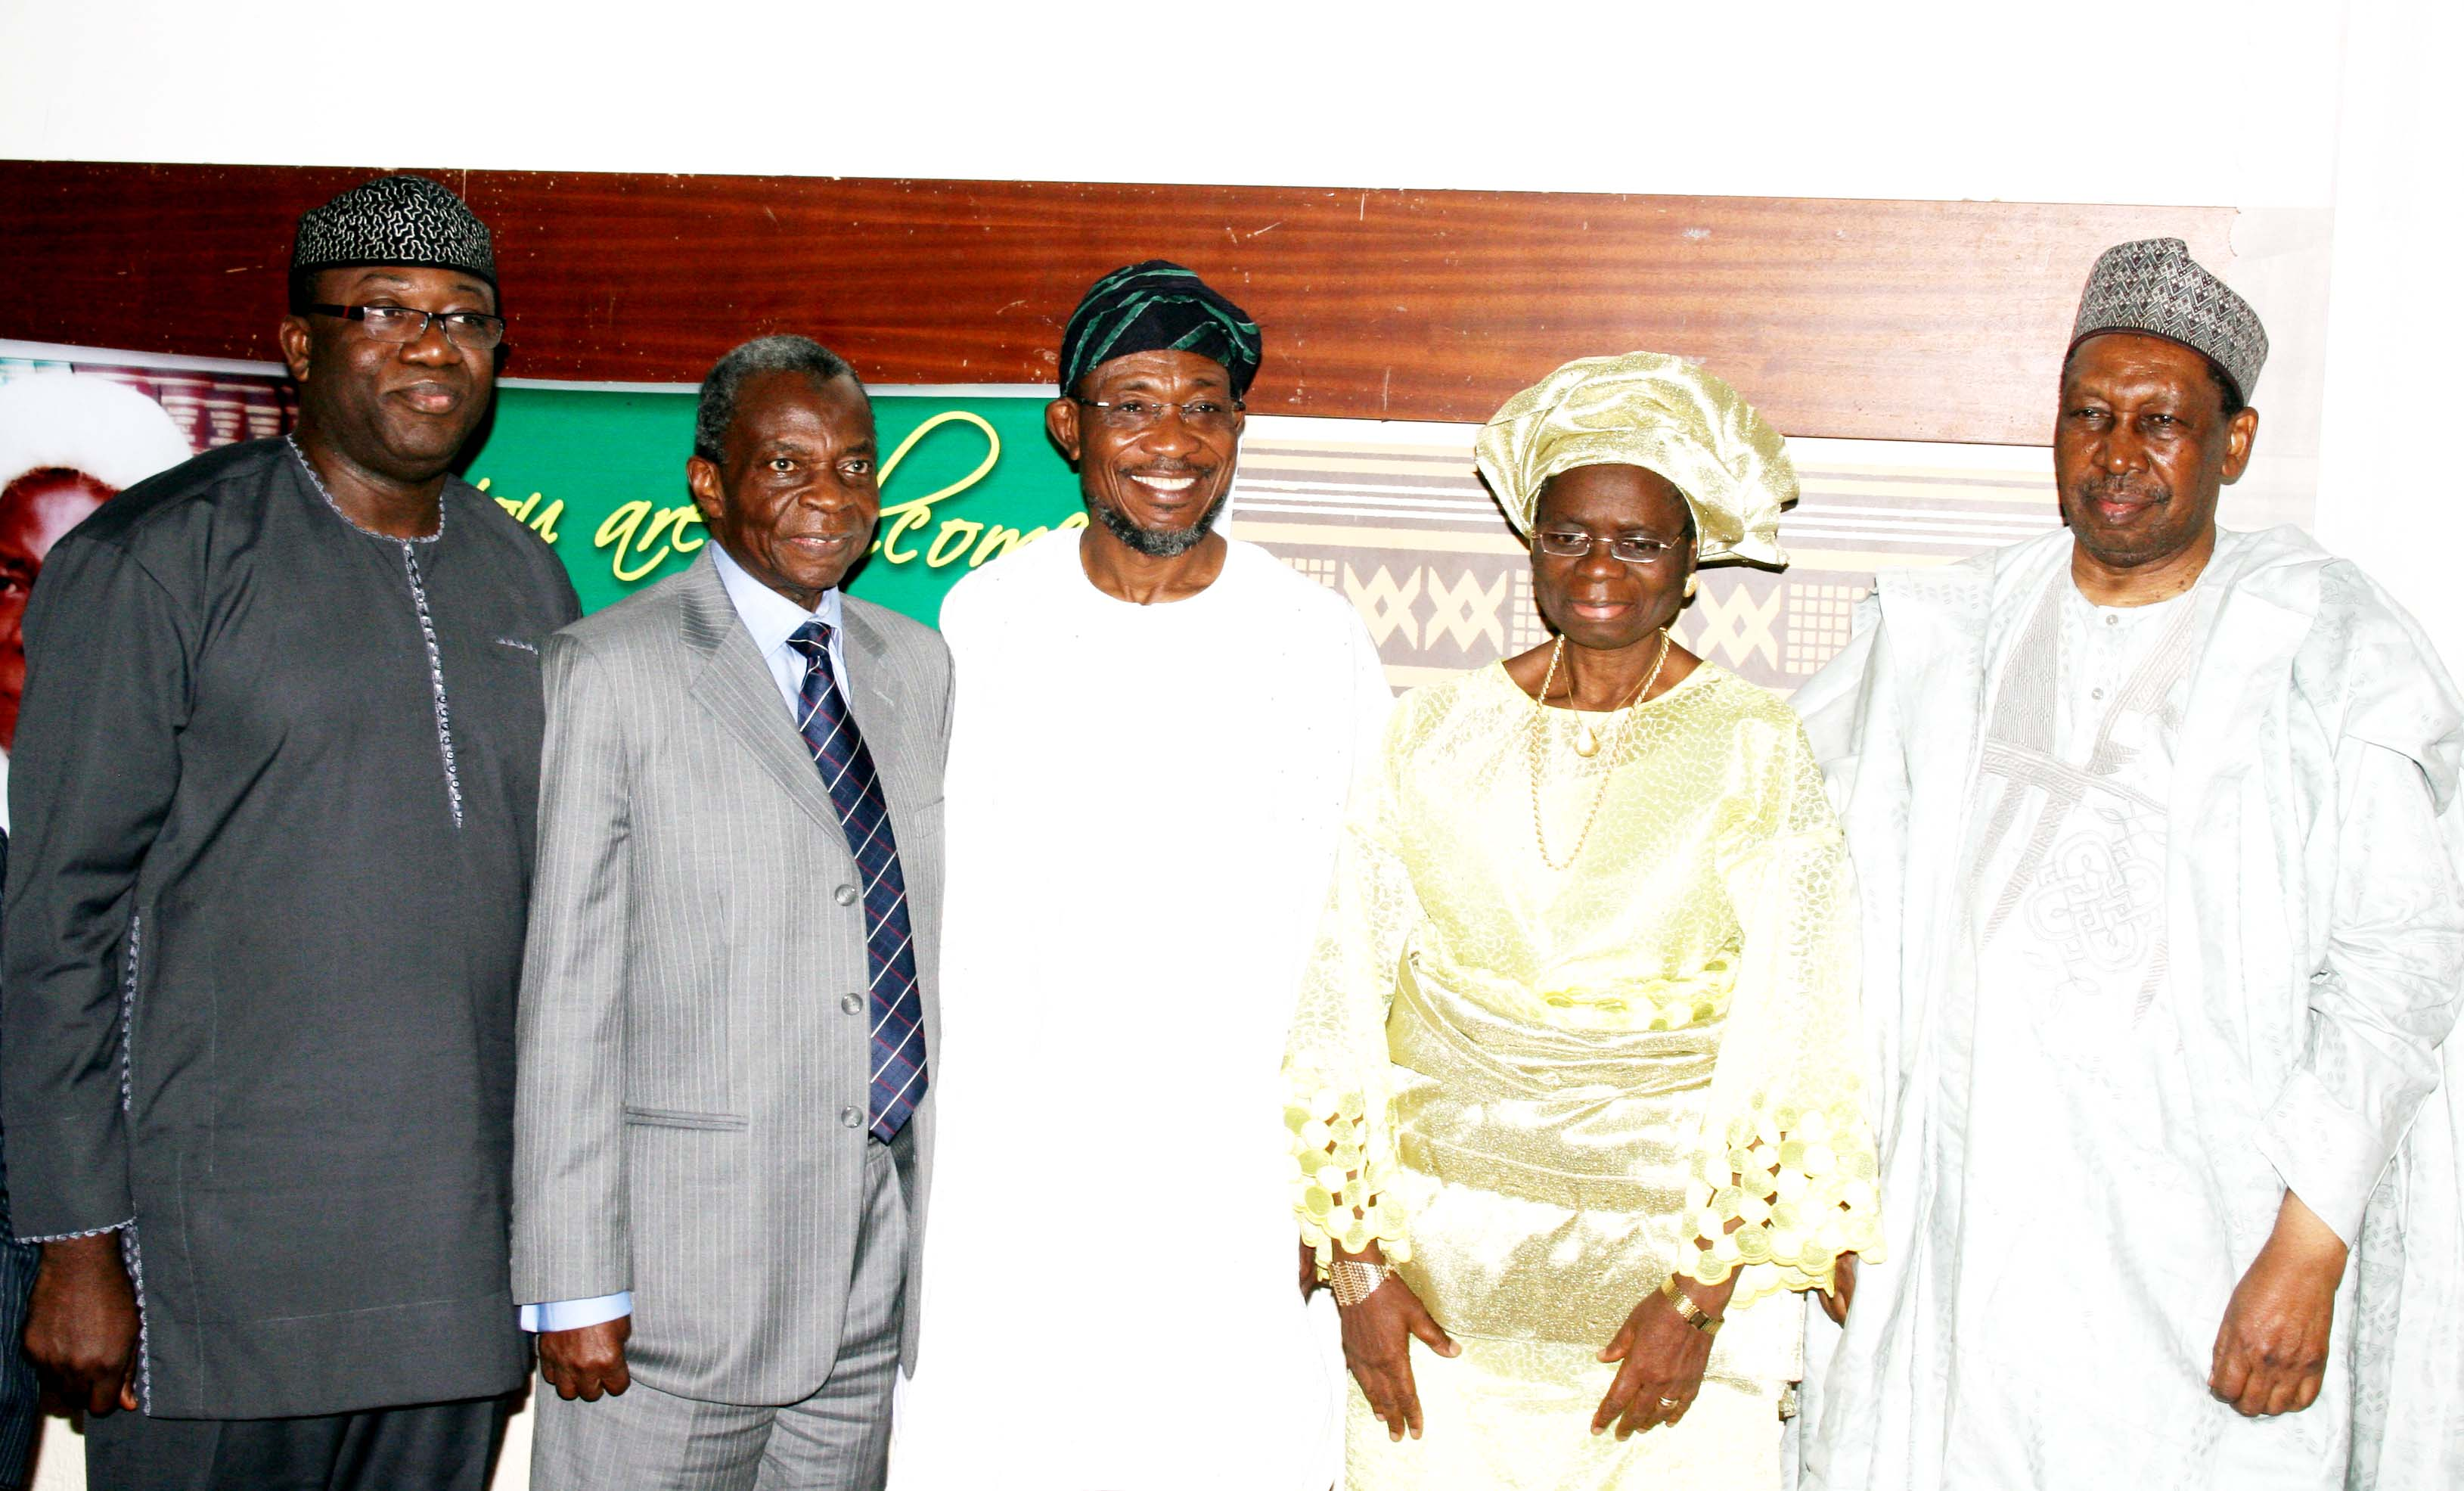 From Left –Governor Ekiti State; Dr. Kayode Fayemi, Honourable Justice Isa Ayo Salami; Governor State of Osun, Ogbeni Rauf Aregbesola; Justice Ayo Salami's wife, Olayinka  and former Chief Justice of Nigeria; Hon.Justice Muhammad Lawal Uwais, during a Book Presentation, titled:  Isa Ayo Salami: Through Life and Justice in Honour of Honourable Justice Isa Ayo Salami, at Nicon Luxury Hotel, Garki Area 8, Abuja on Wednesday 30th